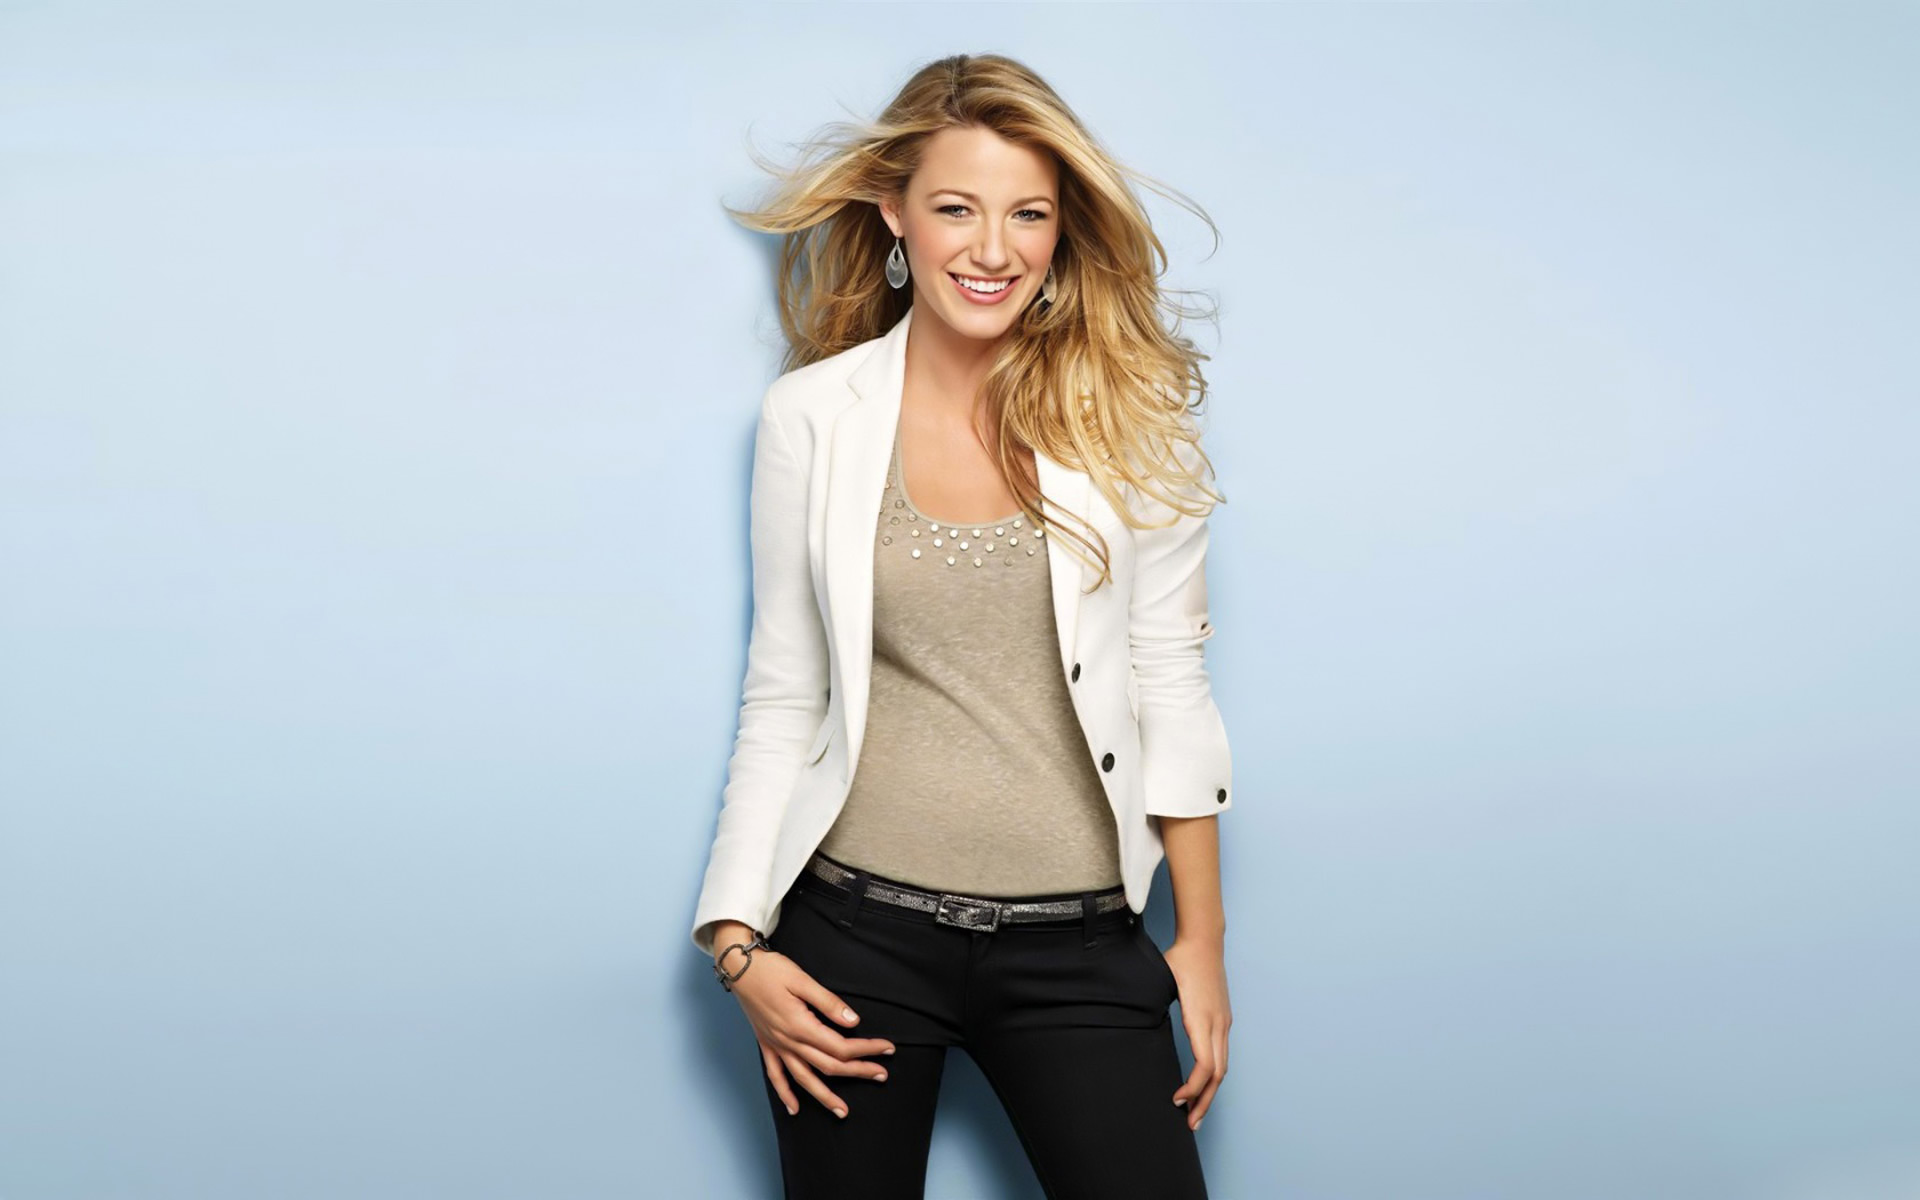 1920x1200 - Blake Lively Wallpapers 26